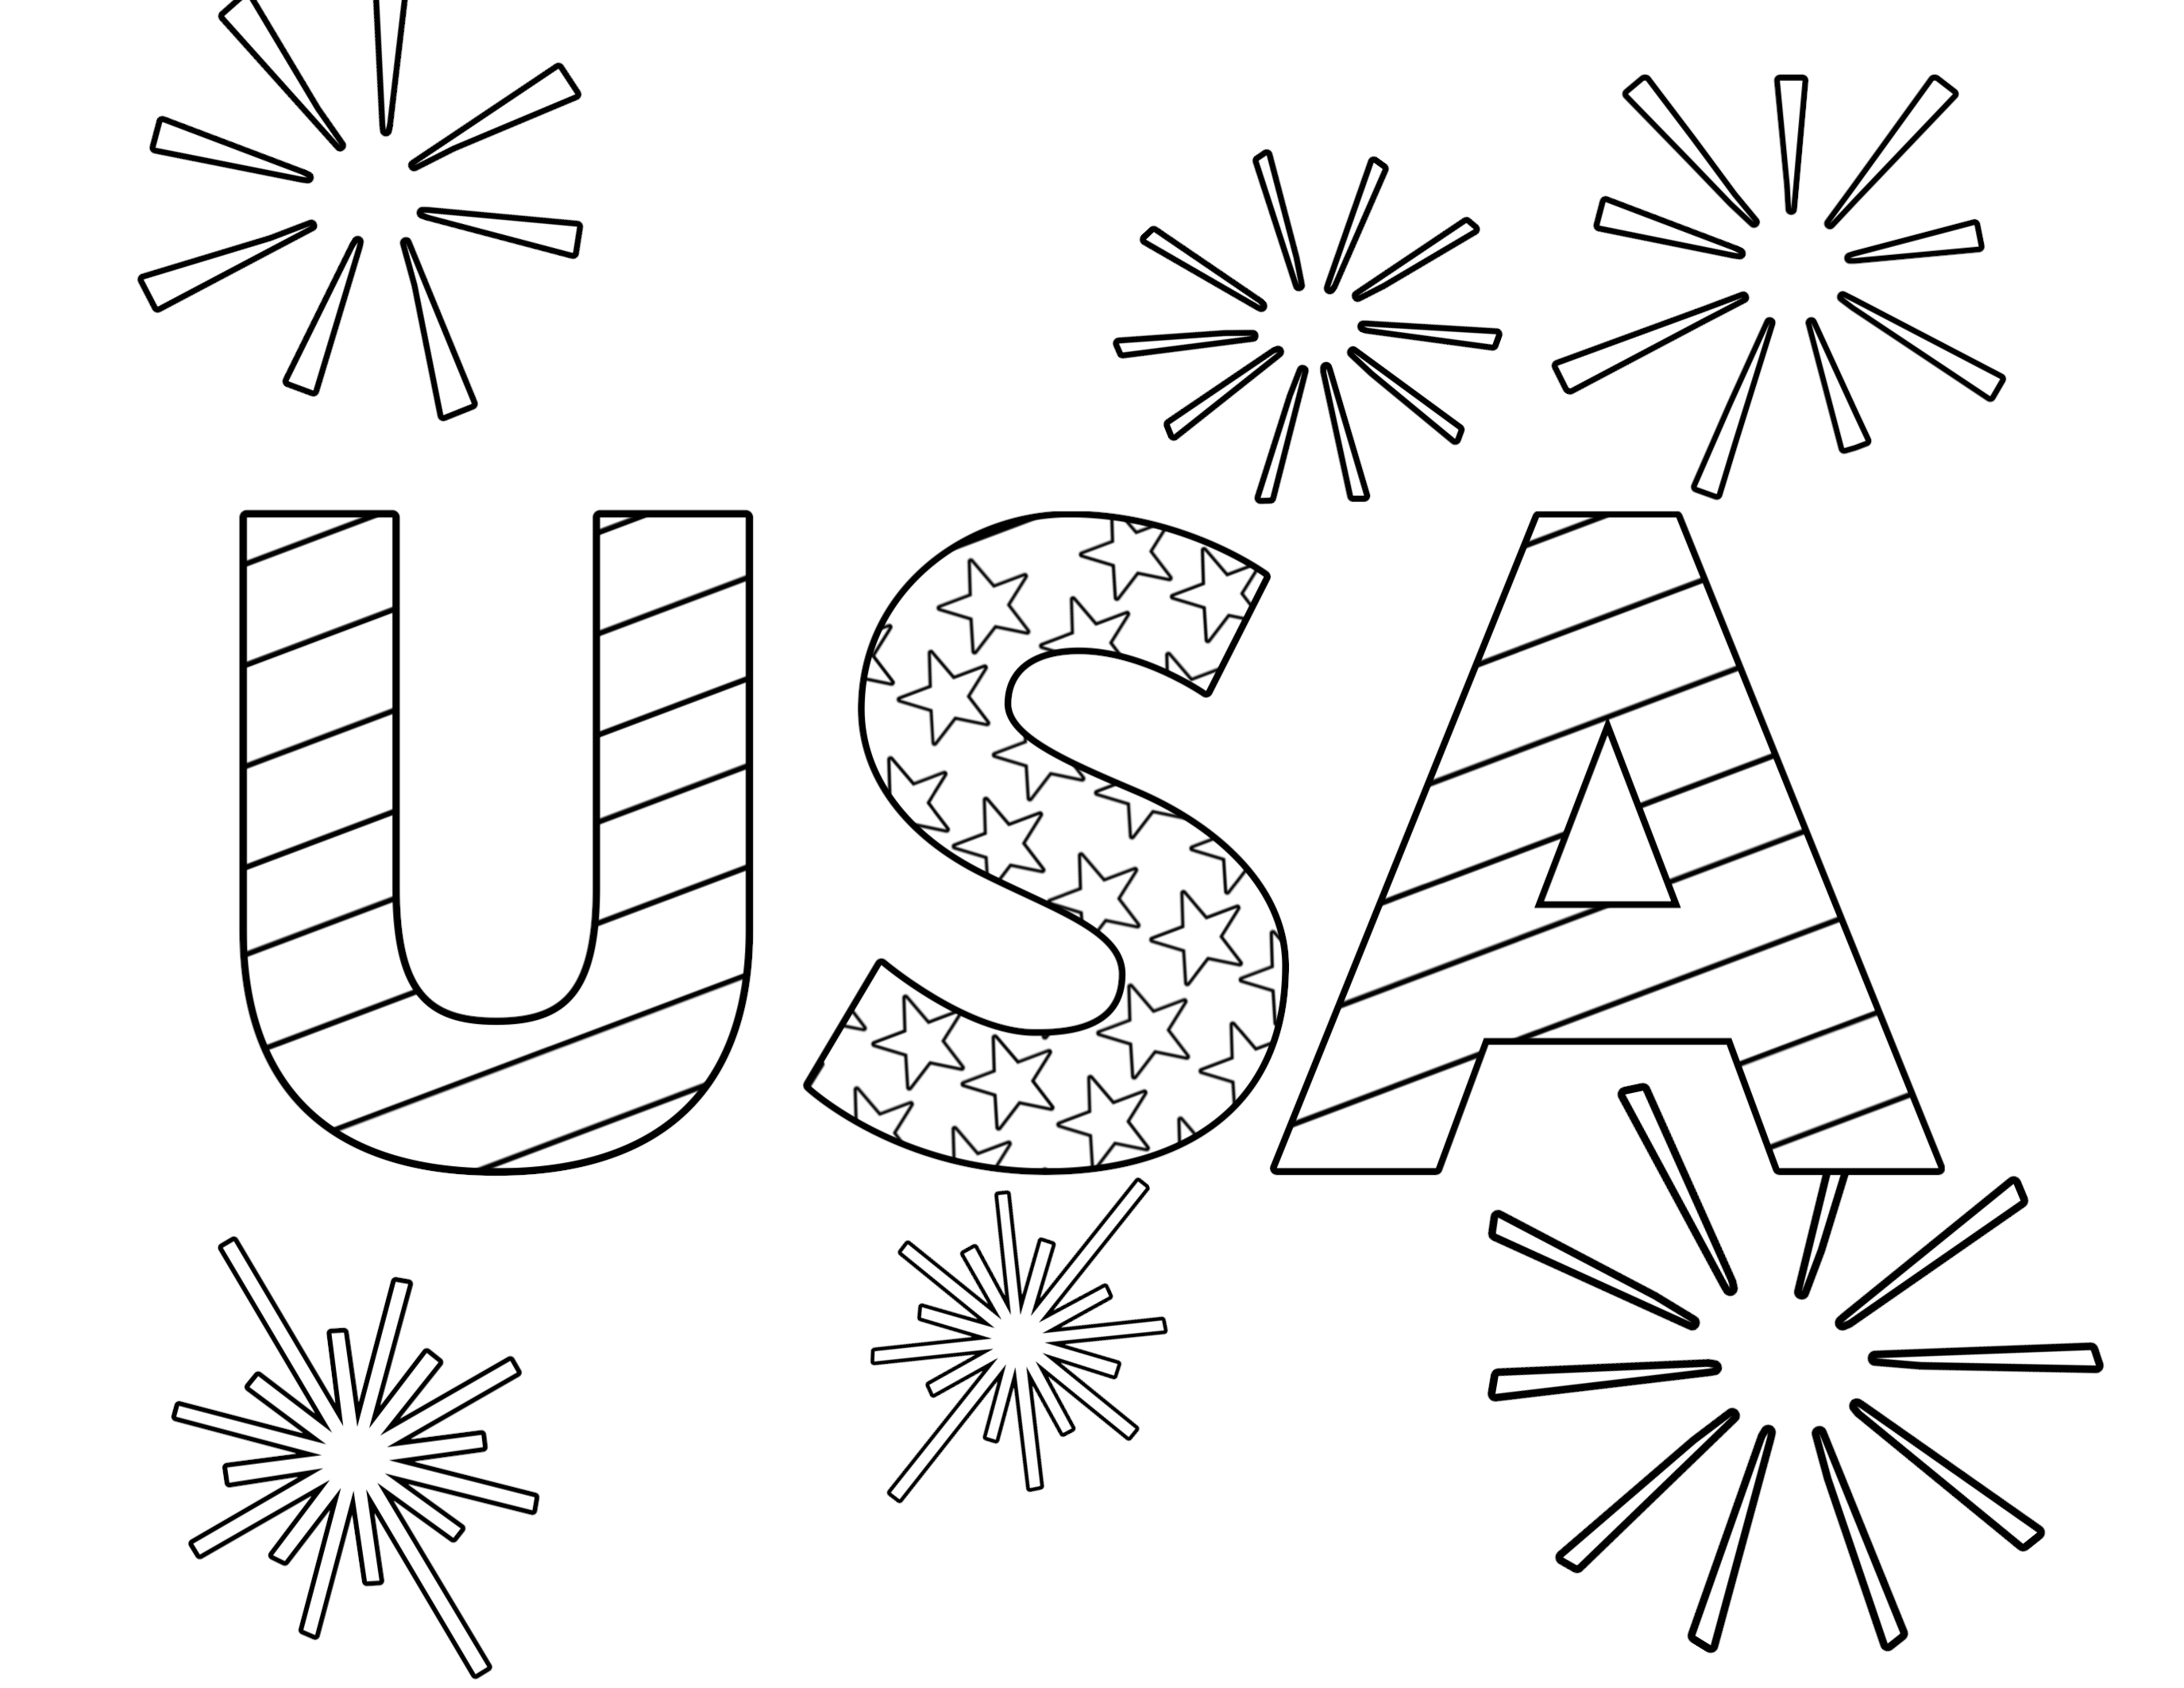 4th of july coloring pages free easy to print 4th of july coloring pages tulamama of pages 4th coloring july